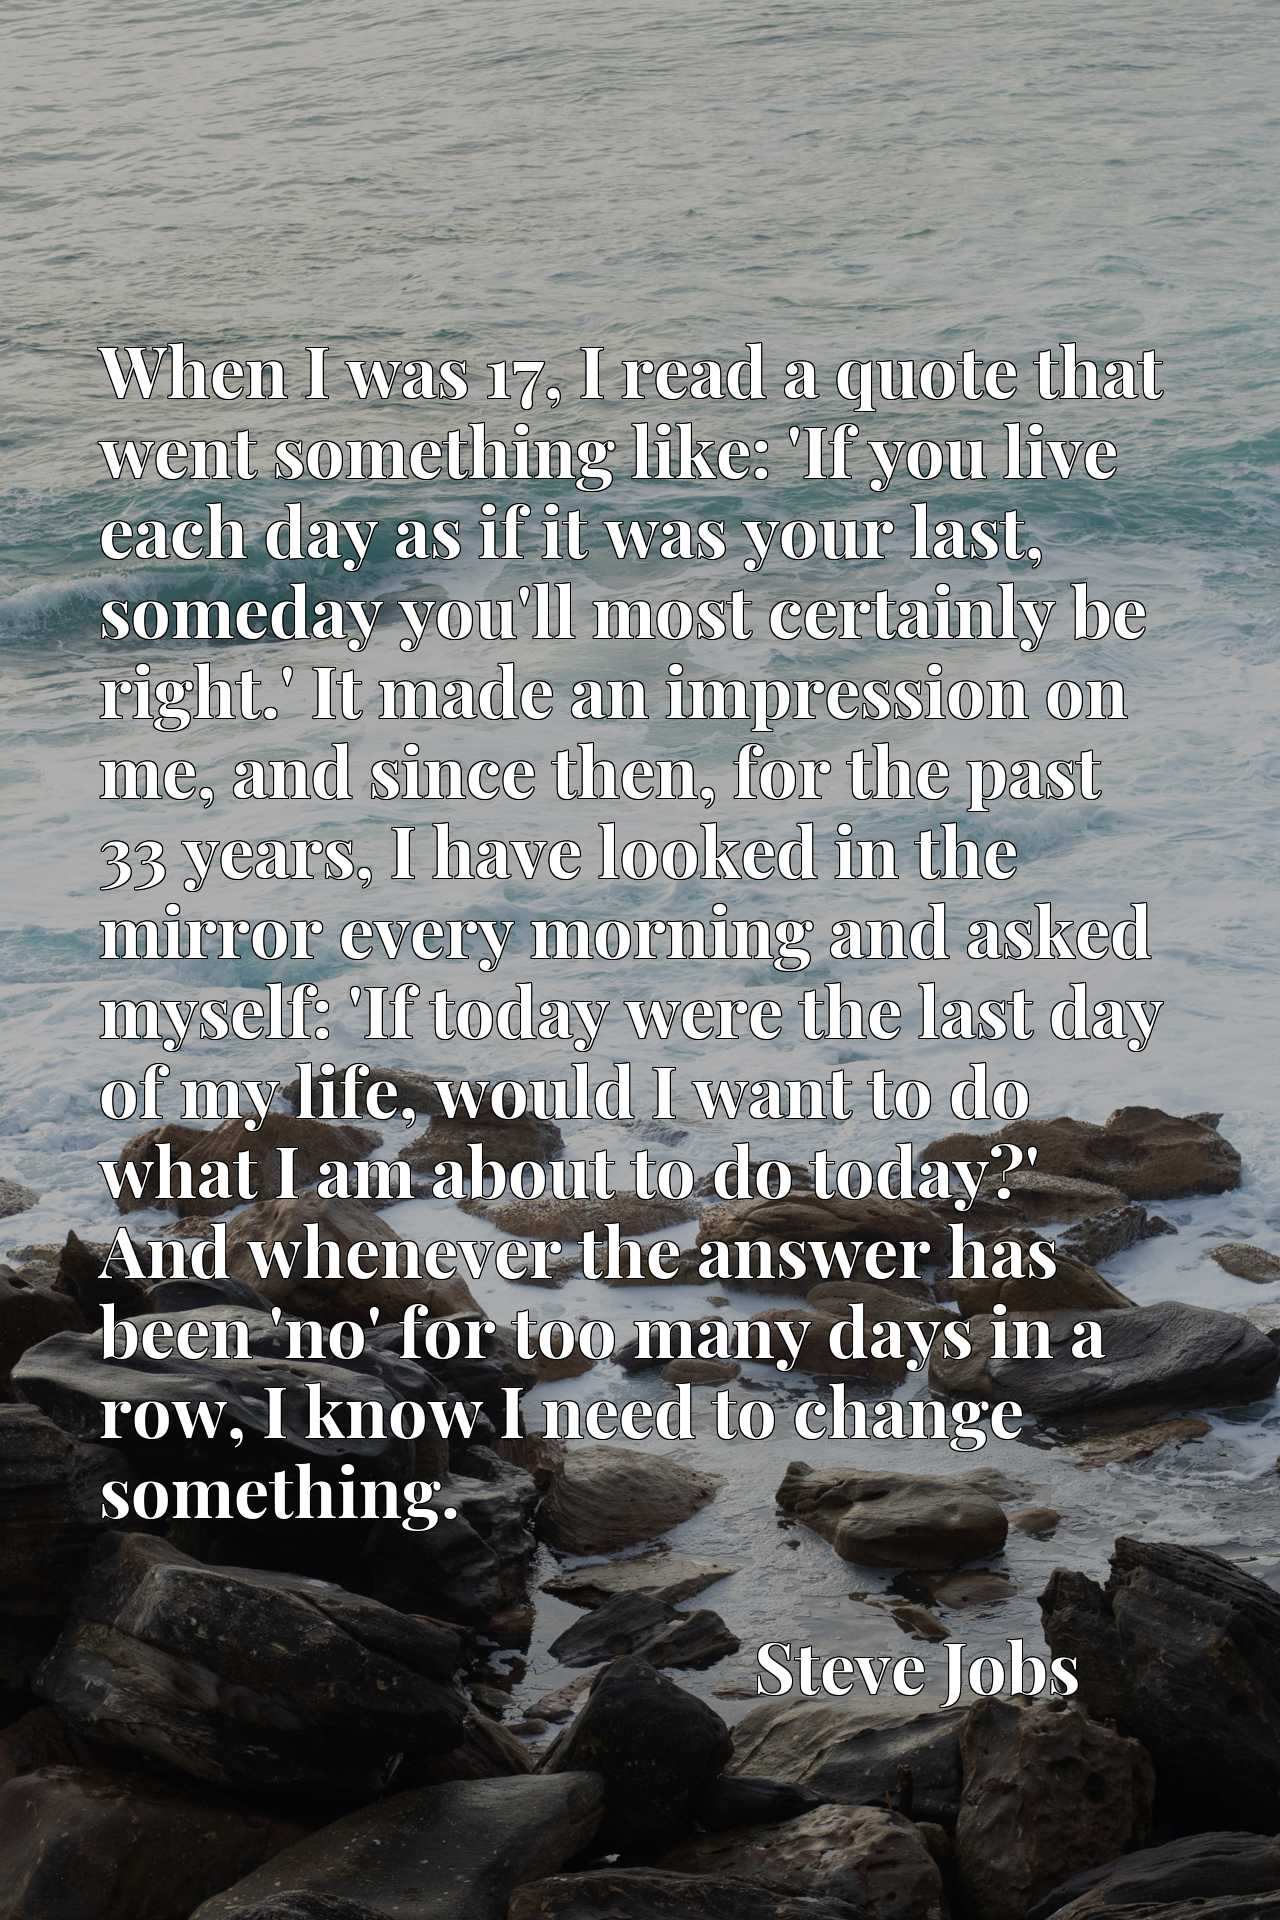 When I was 17, I read a quote that went something like: 'If you live each day as if it was your last, someday you'll most certainly be right.' It made an impression on me, and since then, for the past 33 years, I have looked in the mirror every morning and asked myself: 'If today were the last day of my life, would I want to do what I am about to do today?' And whenever the answer has been 'no' for too many days in a row, I know I need to change something.